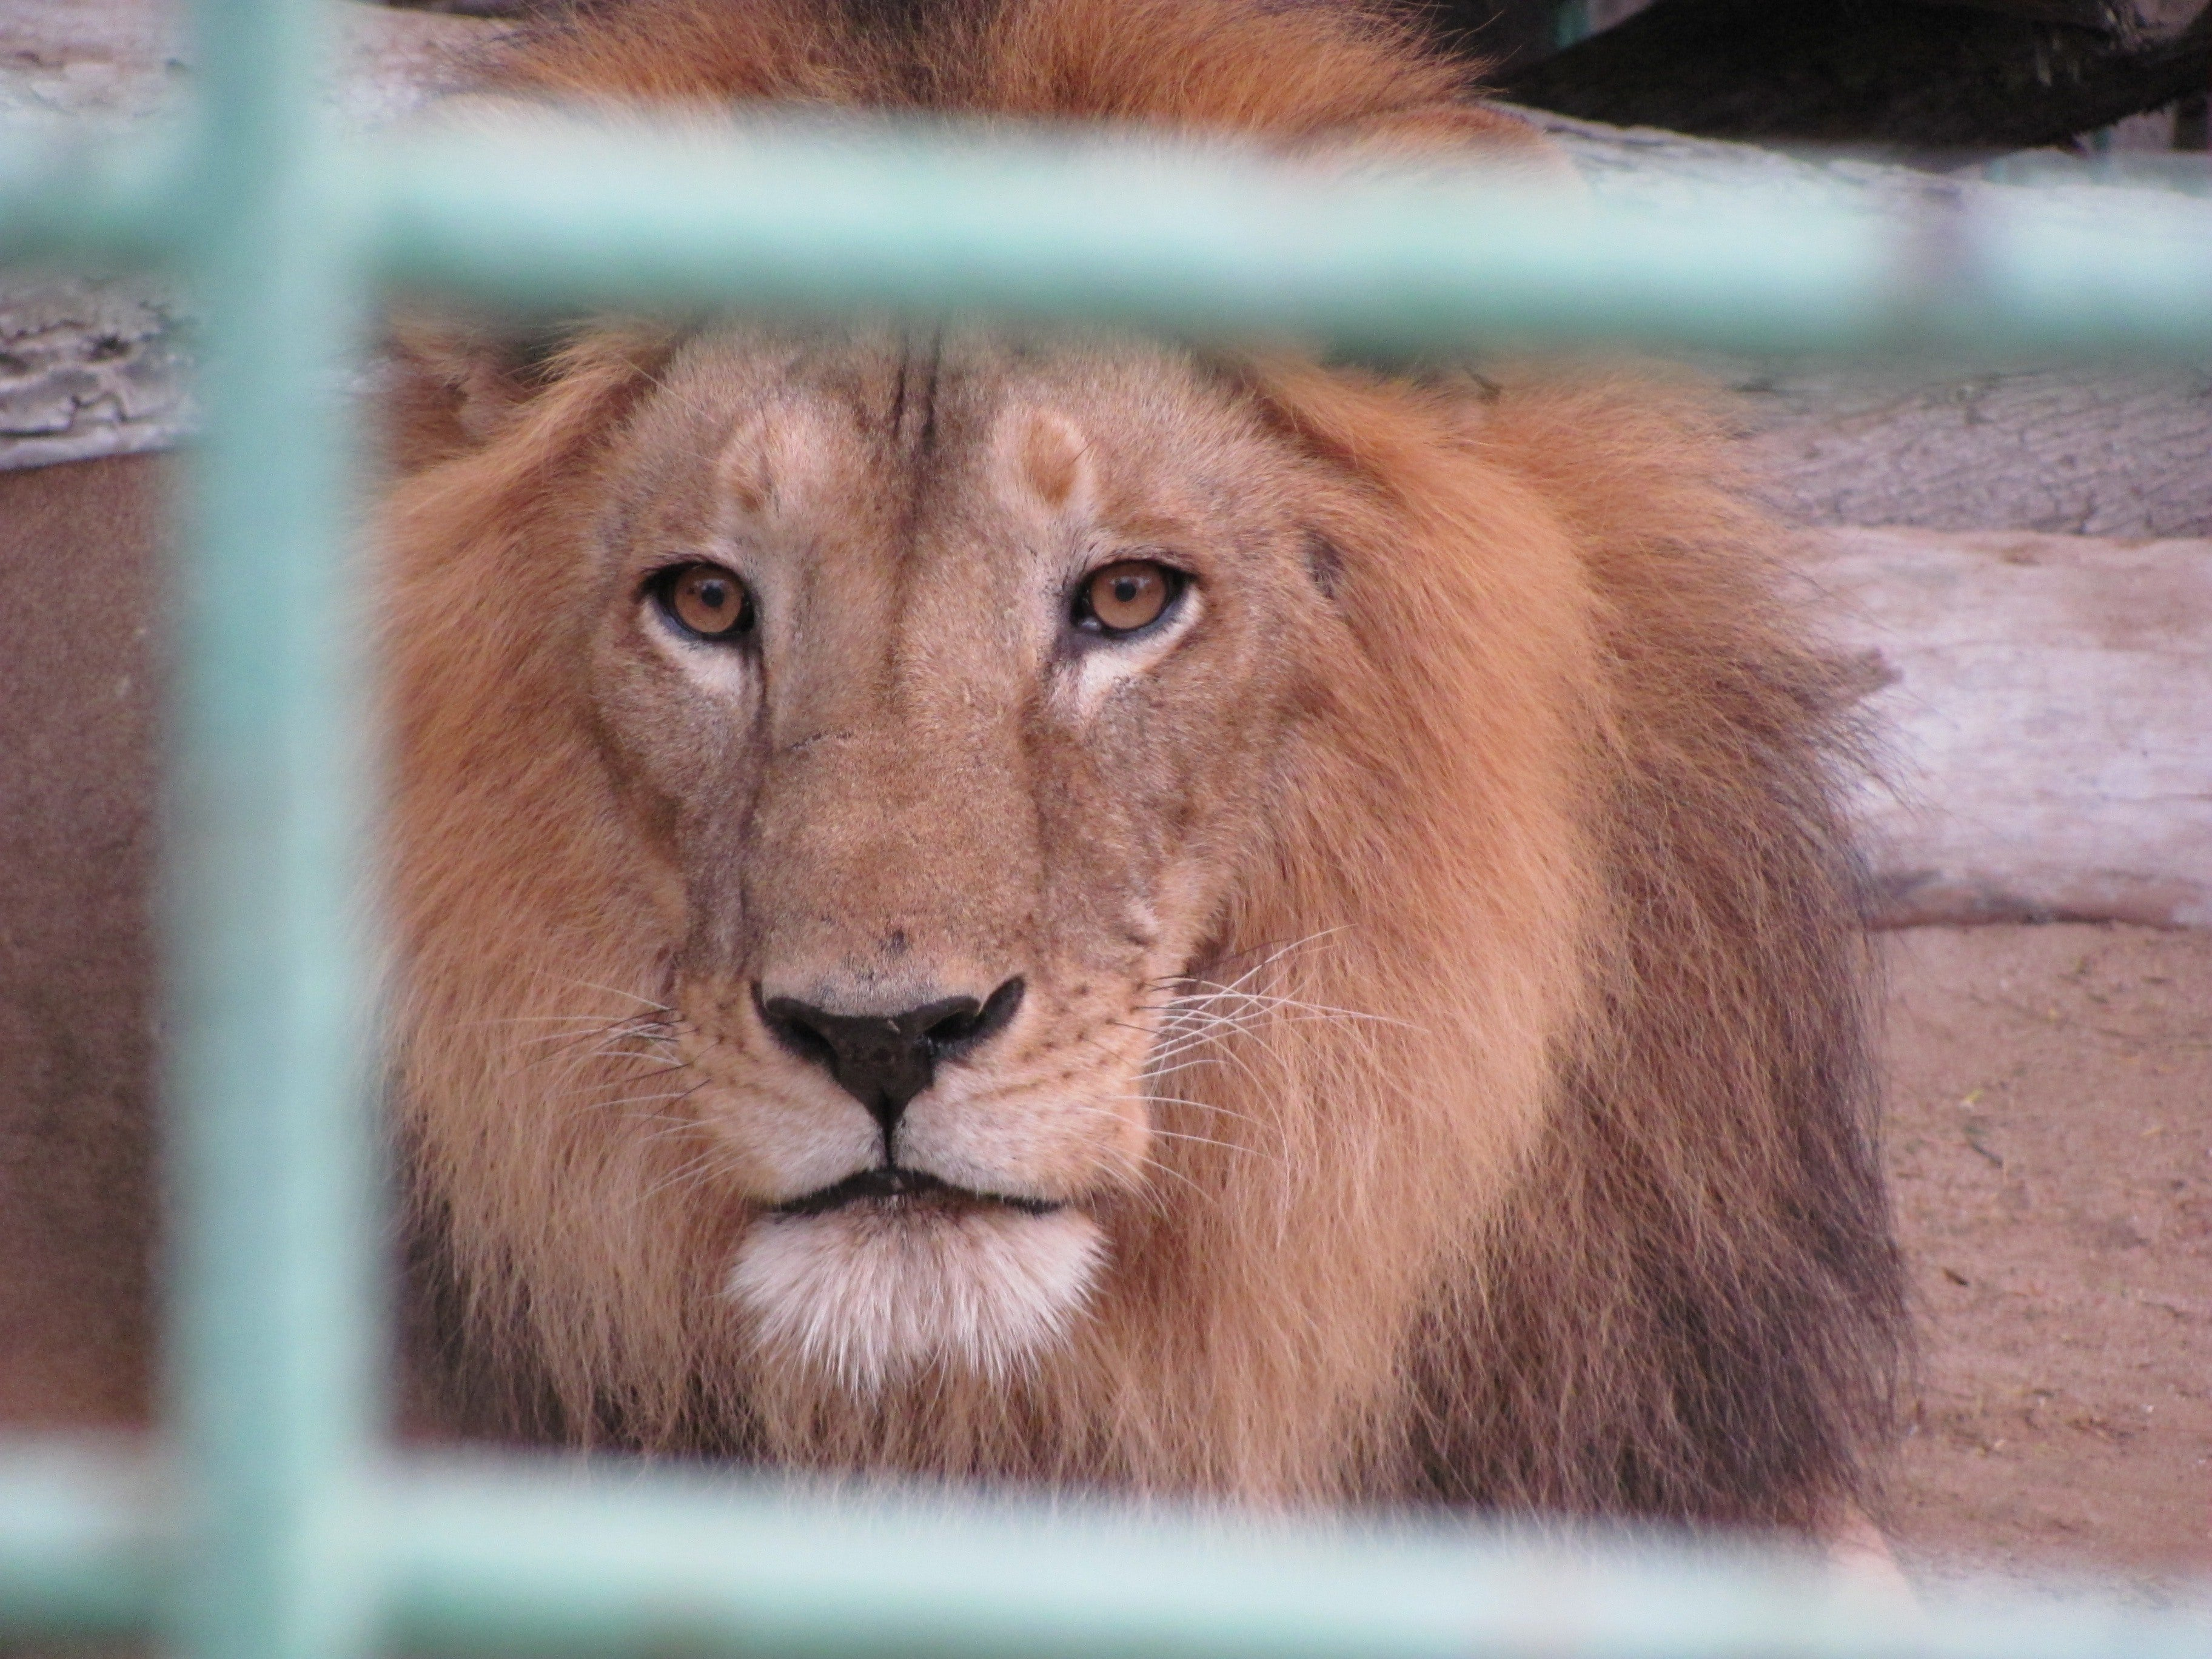 As per the president's request, the sick deer was taken to the lion's cage, where another surprise awaited him.   Photo: Pexels